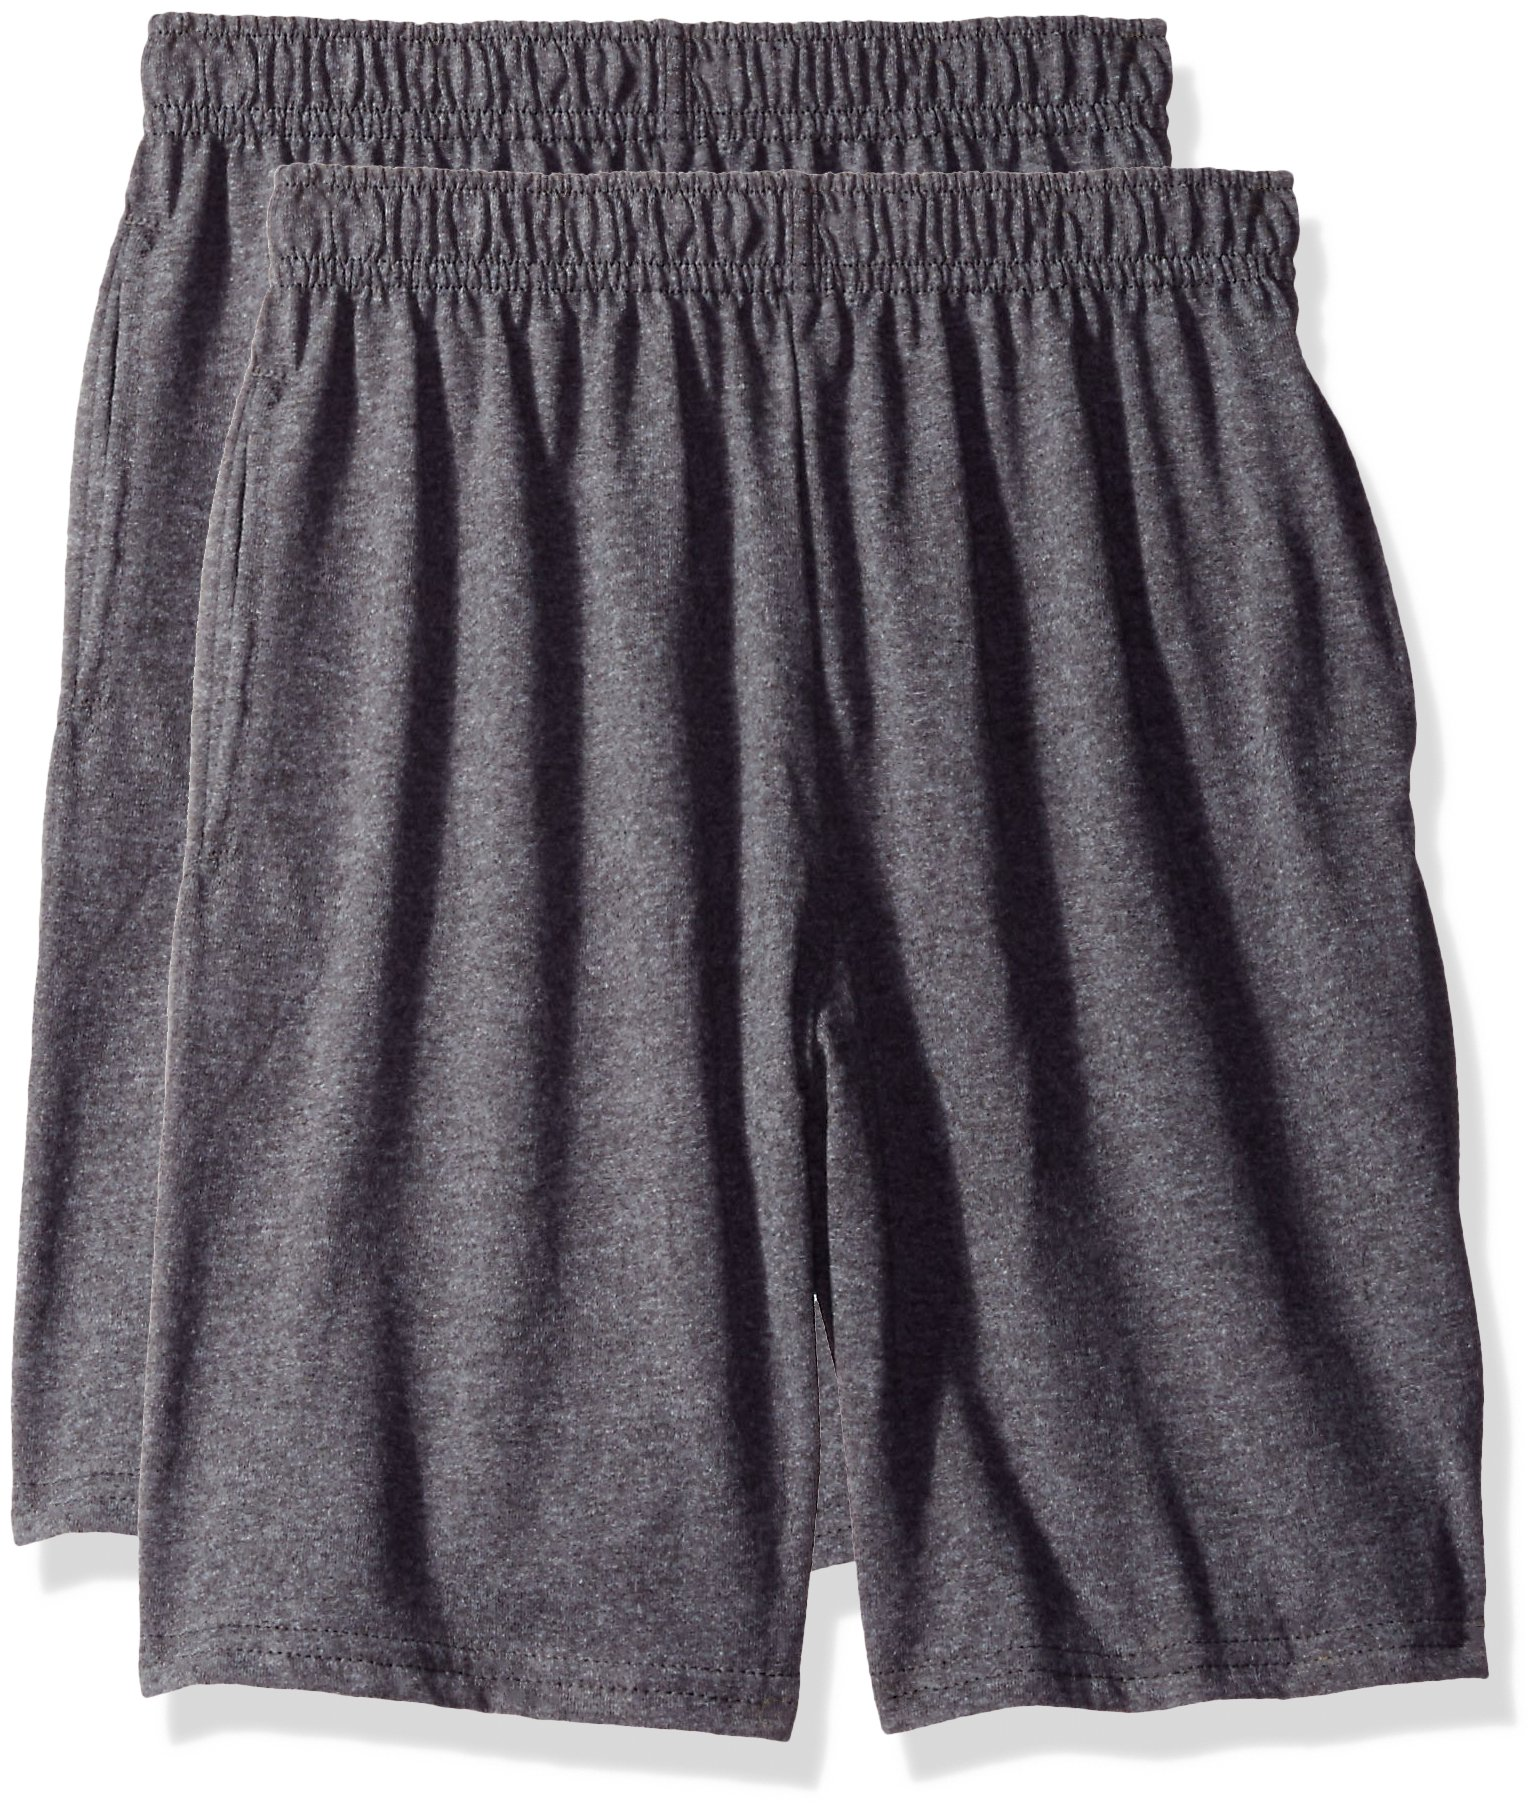 Hanes Big Boys' Jersey Short (Pack of 2), Charcoal